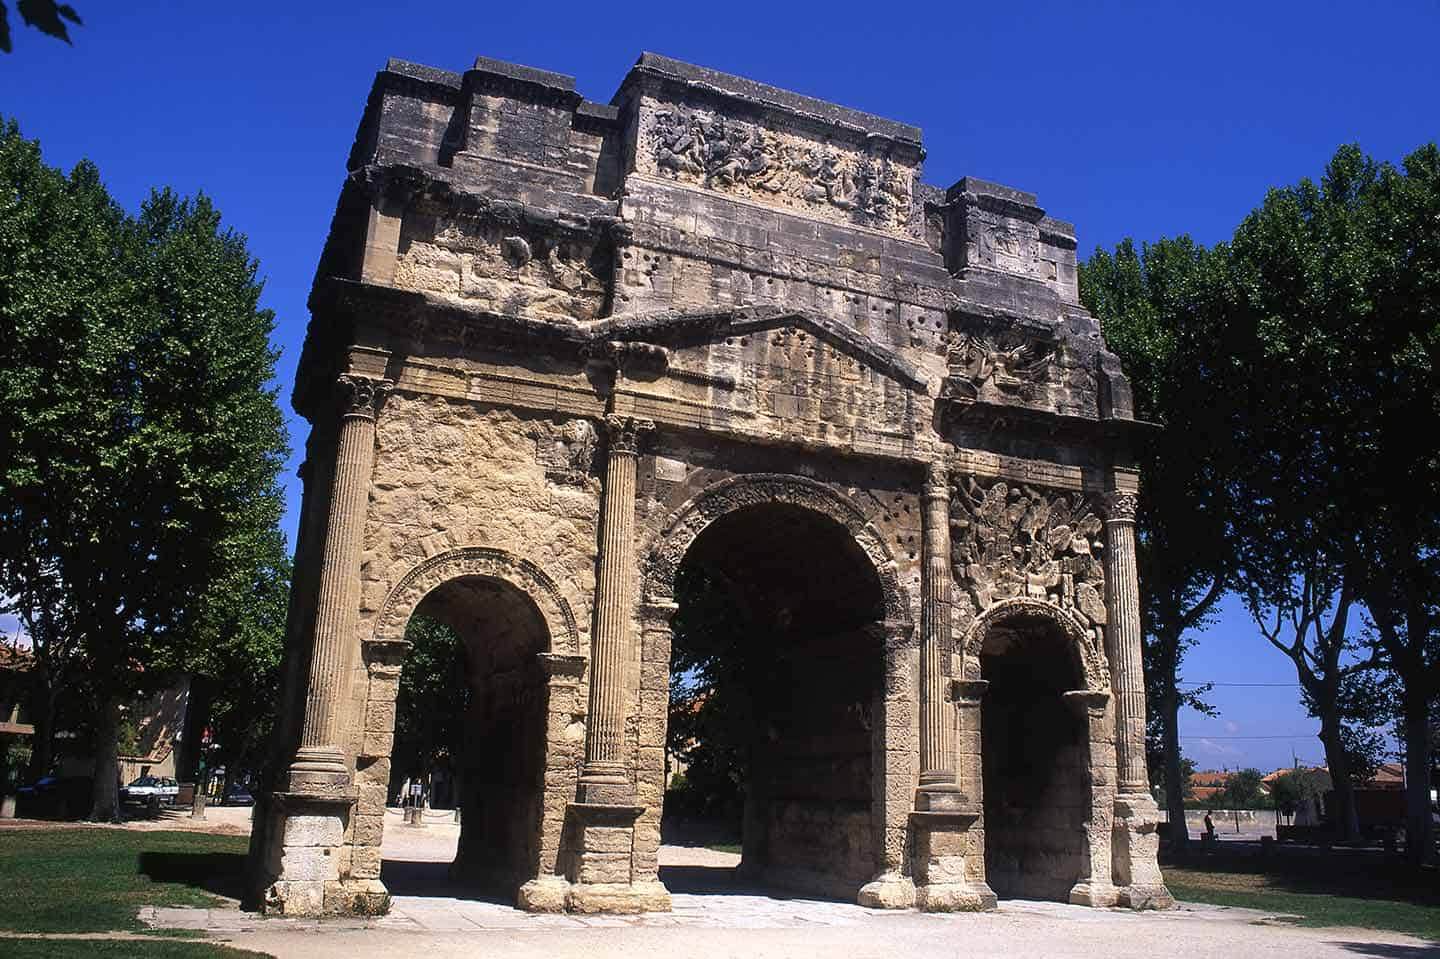 Image of the Roman Arc de Triomphe in Provence, France